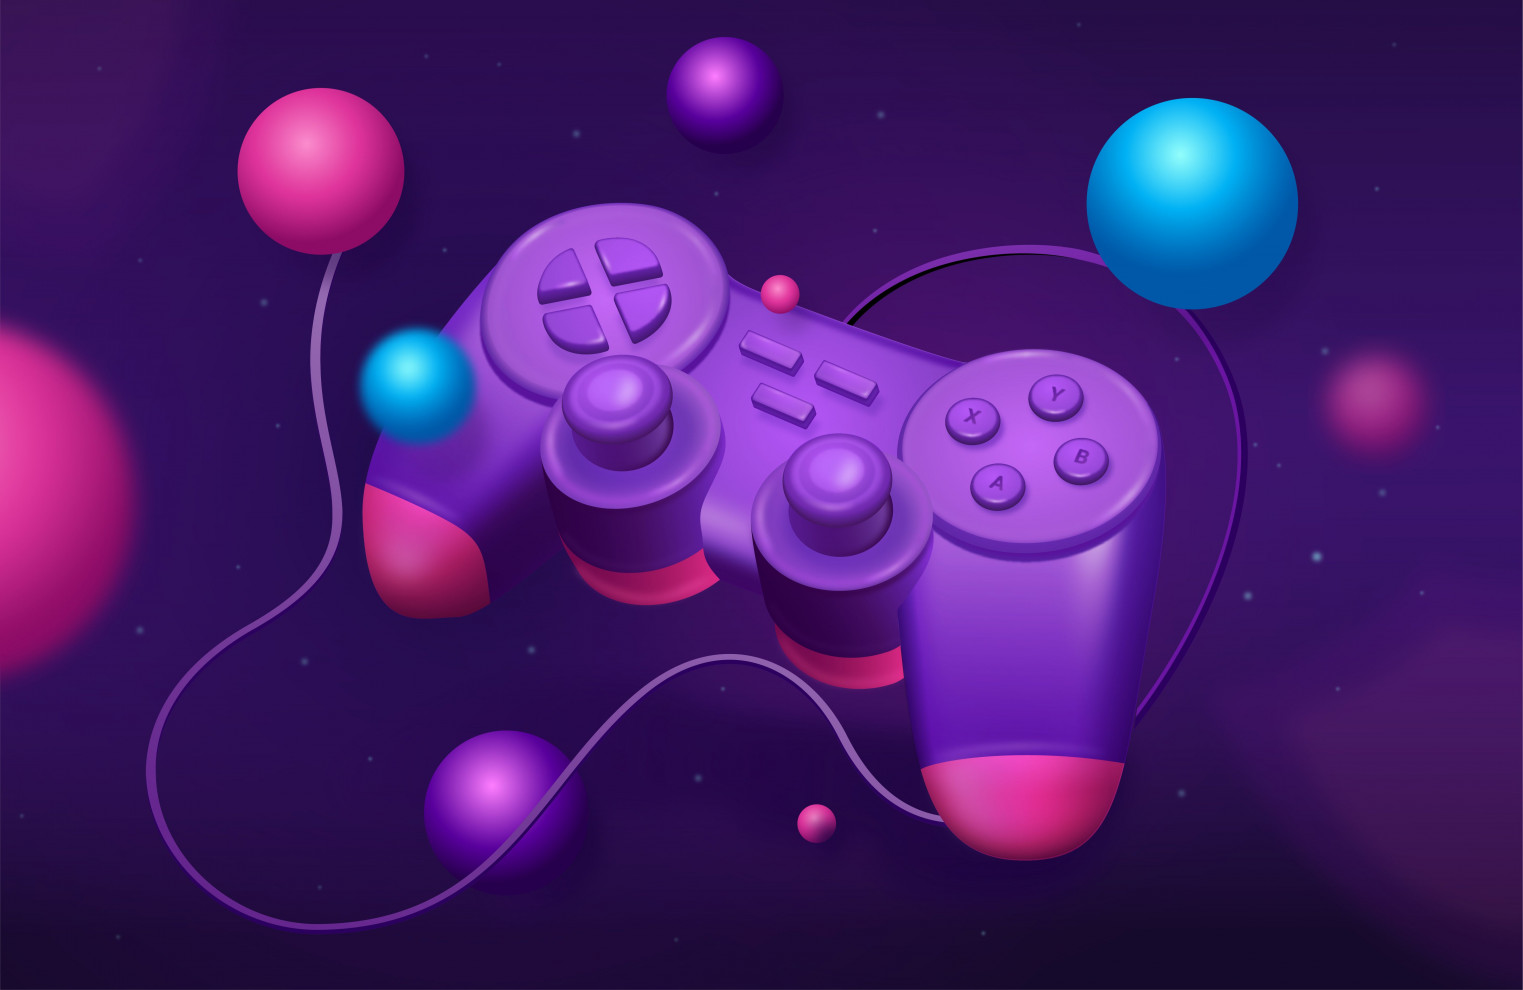 Banner with illustrated gamepad